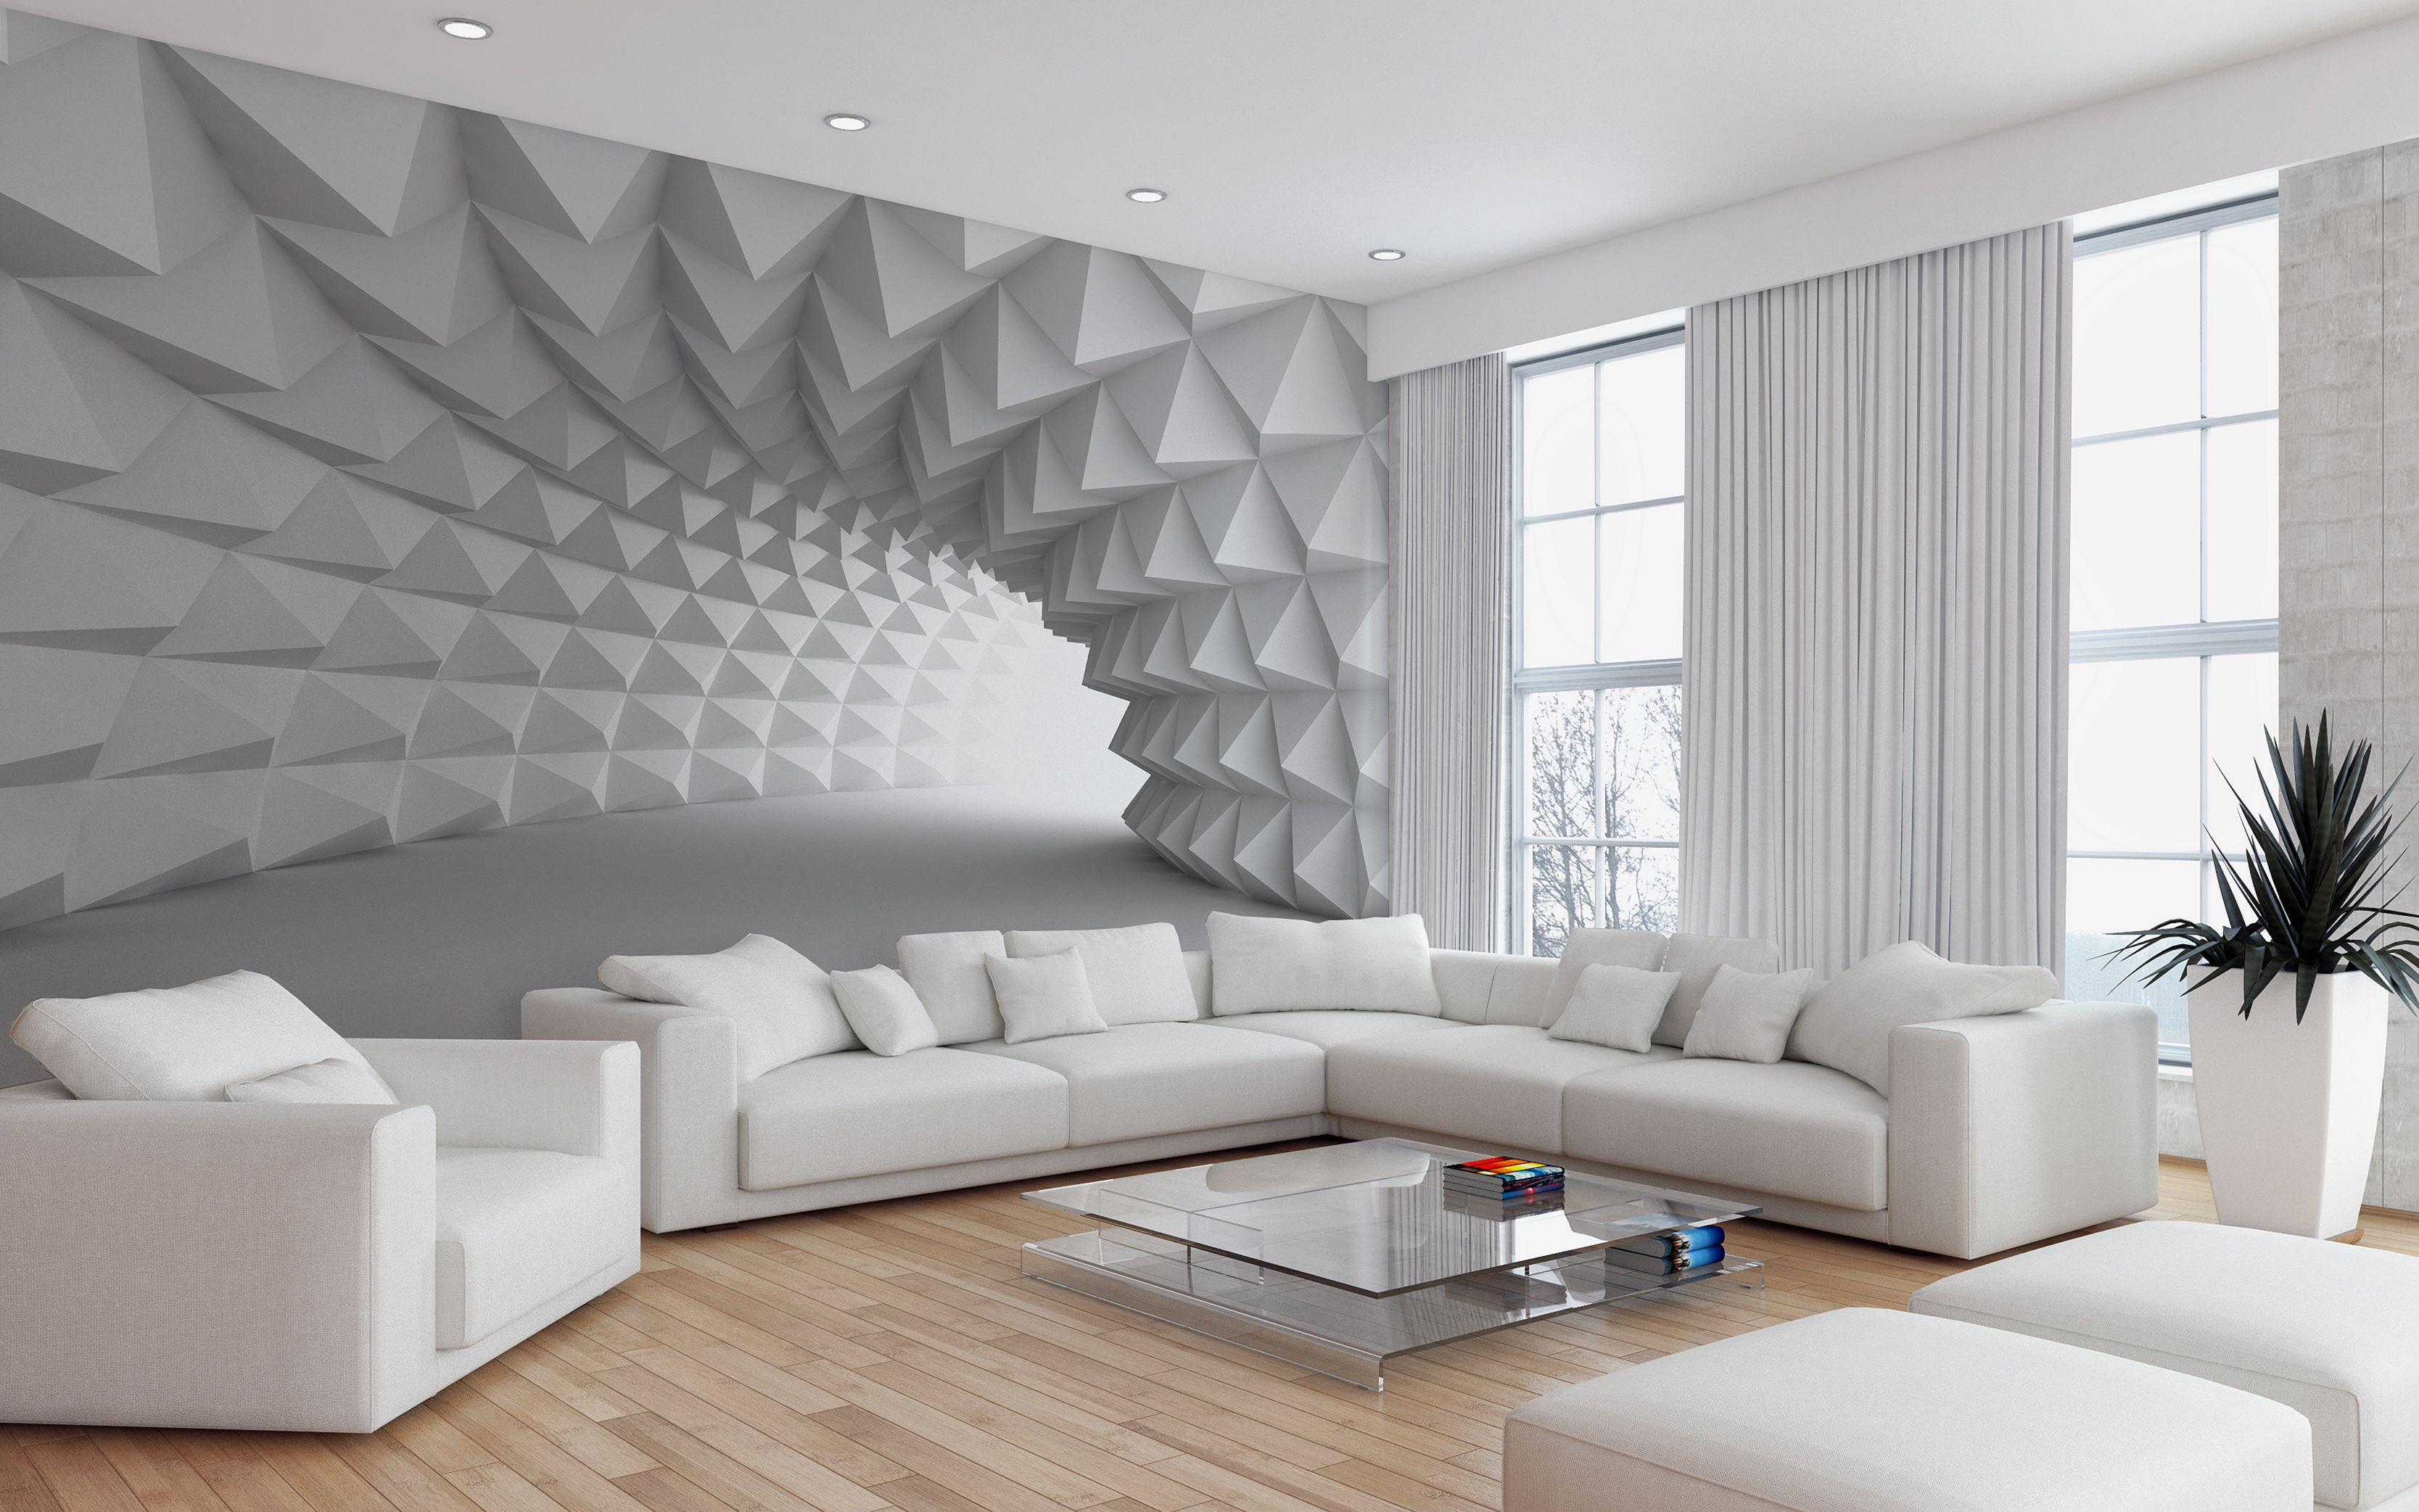 12 Gorgeous Living Room Design With 3d Wall Ideas To Inspire You